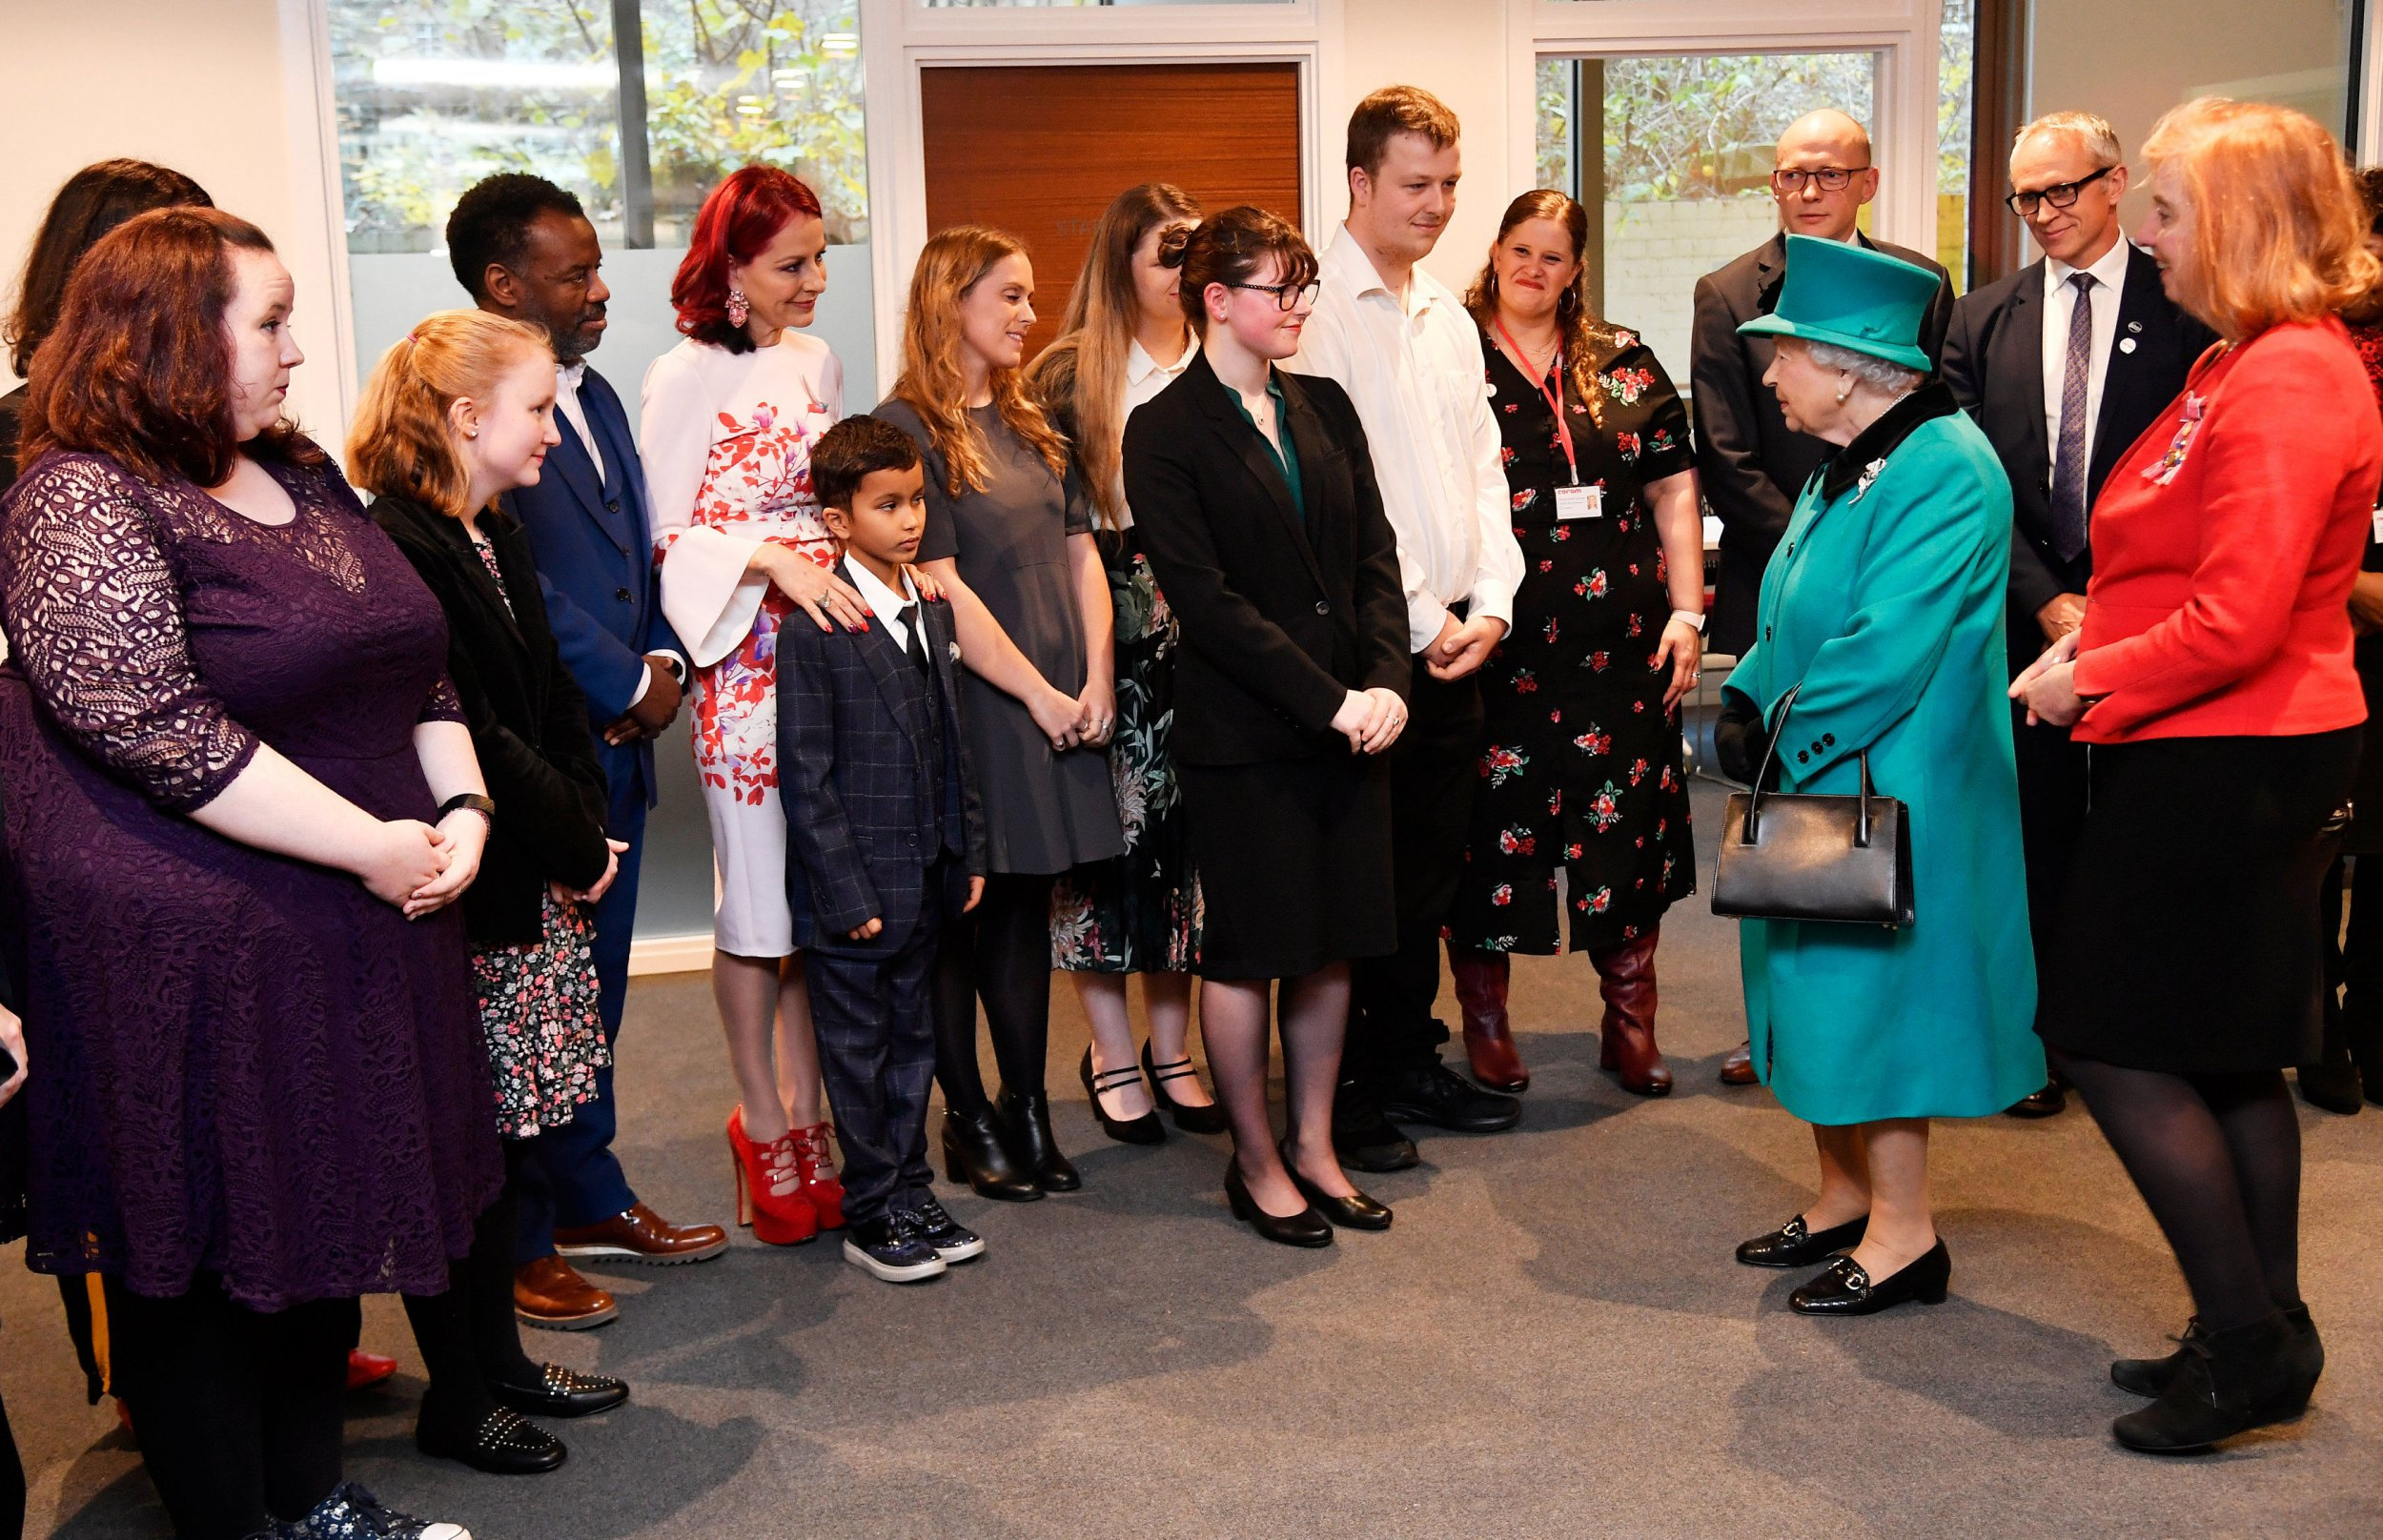 Queen Elizabeth II during a visit to Coram, the UK's oldest children's charity, to open the Queen Elizabeth II Centre at its base in central London. PRESS ASSOCIATION Photo. Picture date: Wednesday December 5, 2018. See PA story ROYAL Queen. Photo credit should read: Toby Melville/PA Wire